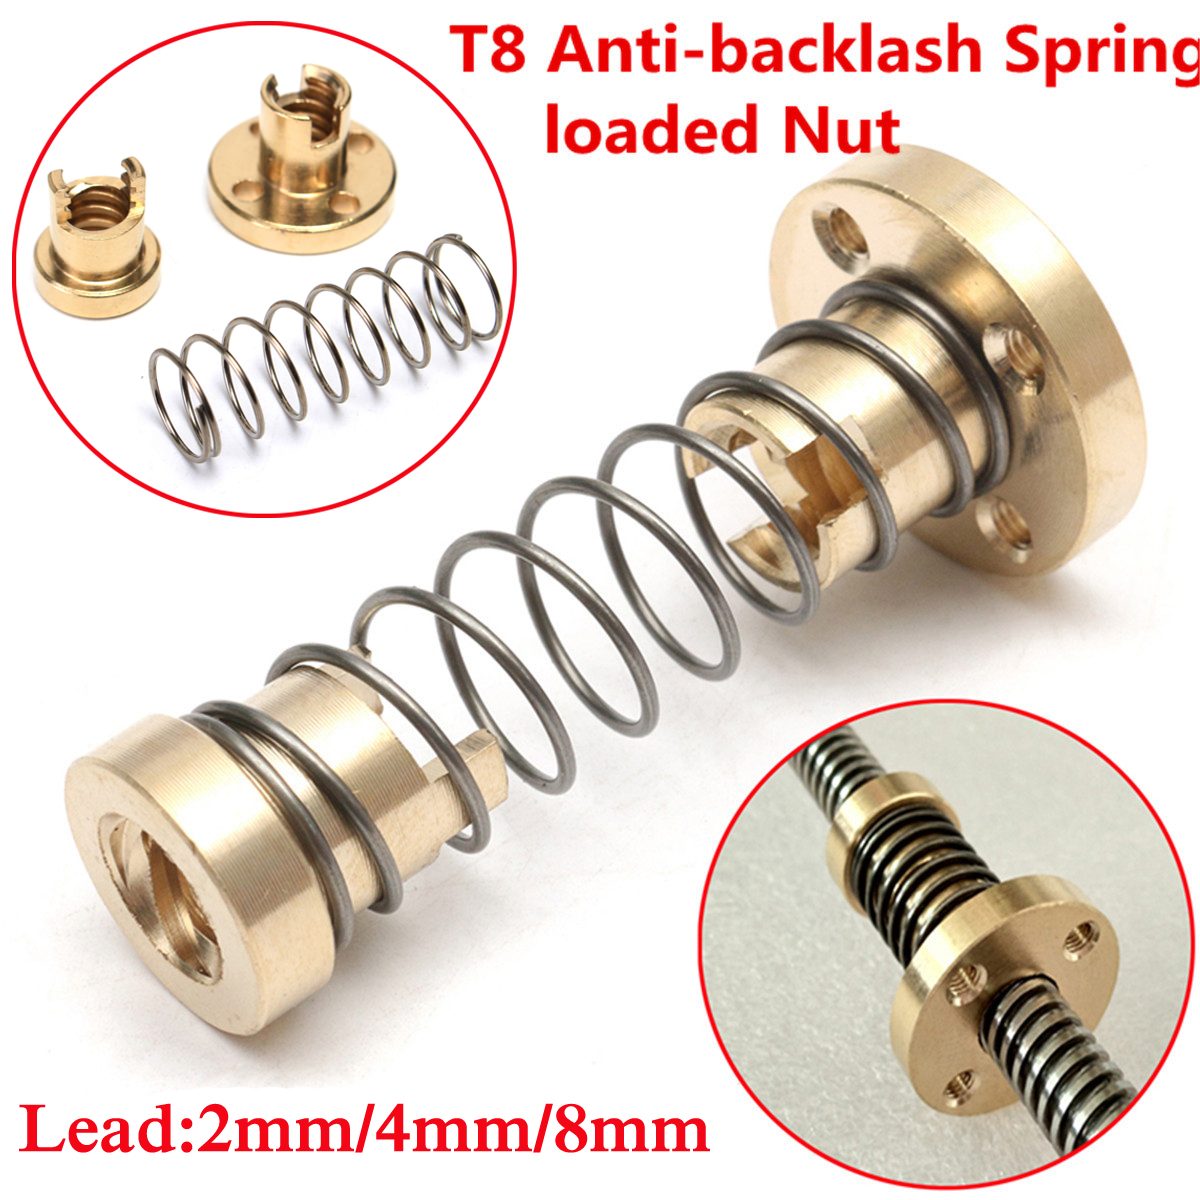 T8-Anti-backlash-Spring-Loaded-Nut-For-CNC-2mm-4mm-8mm-Threaded-Rod-Lead-Screw